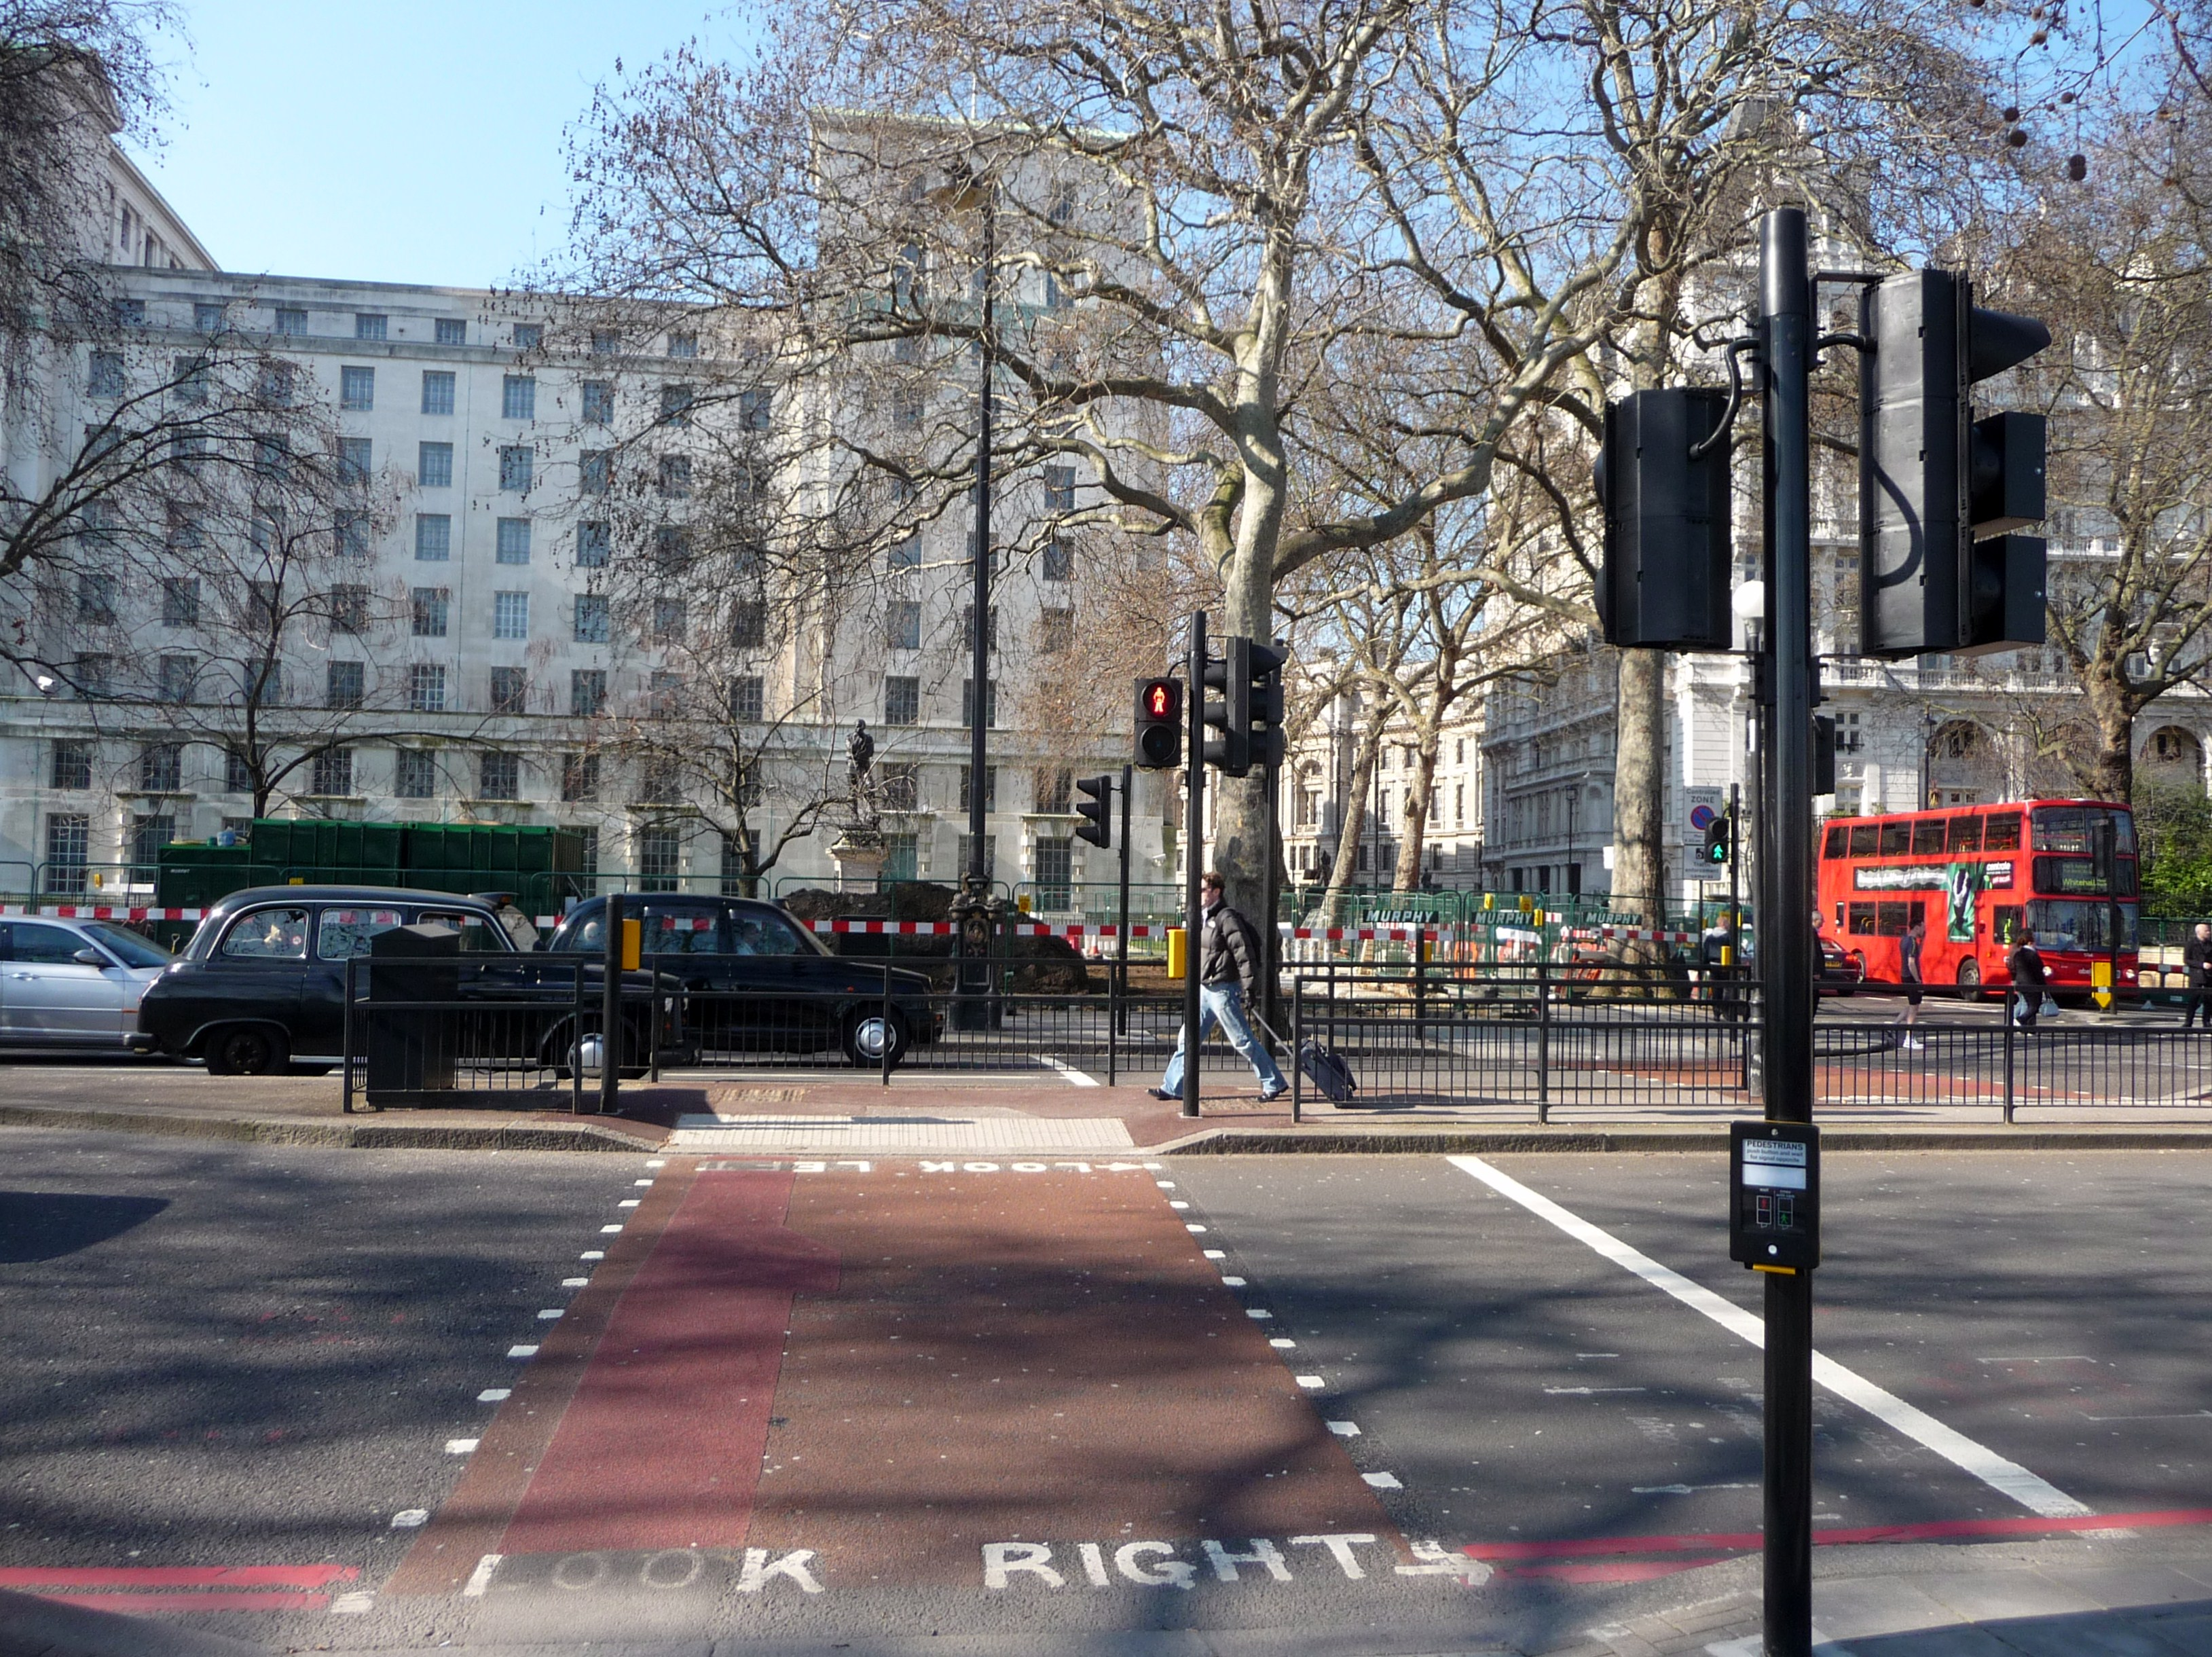 1740 south beretania street - File London Westminster Victoria Embankment Pedestrian Crossing Geograph Org Uk